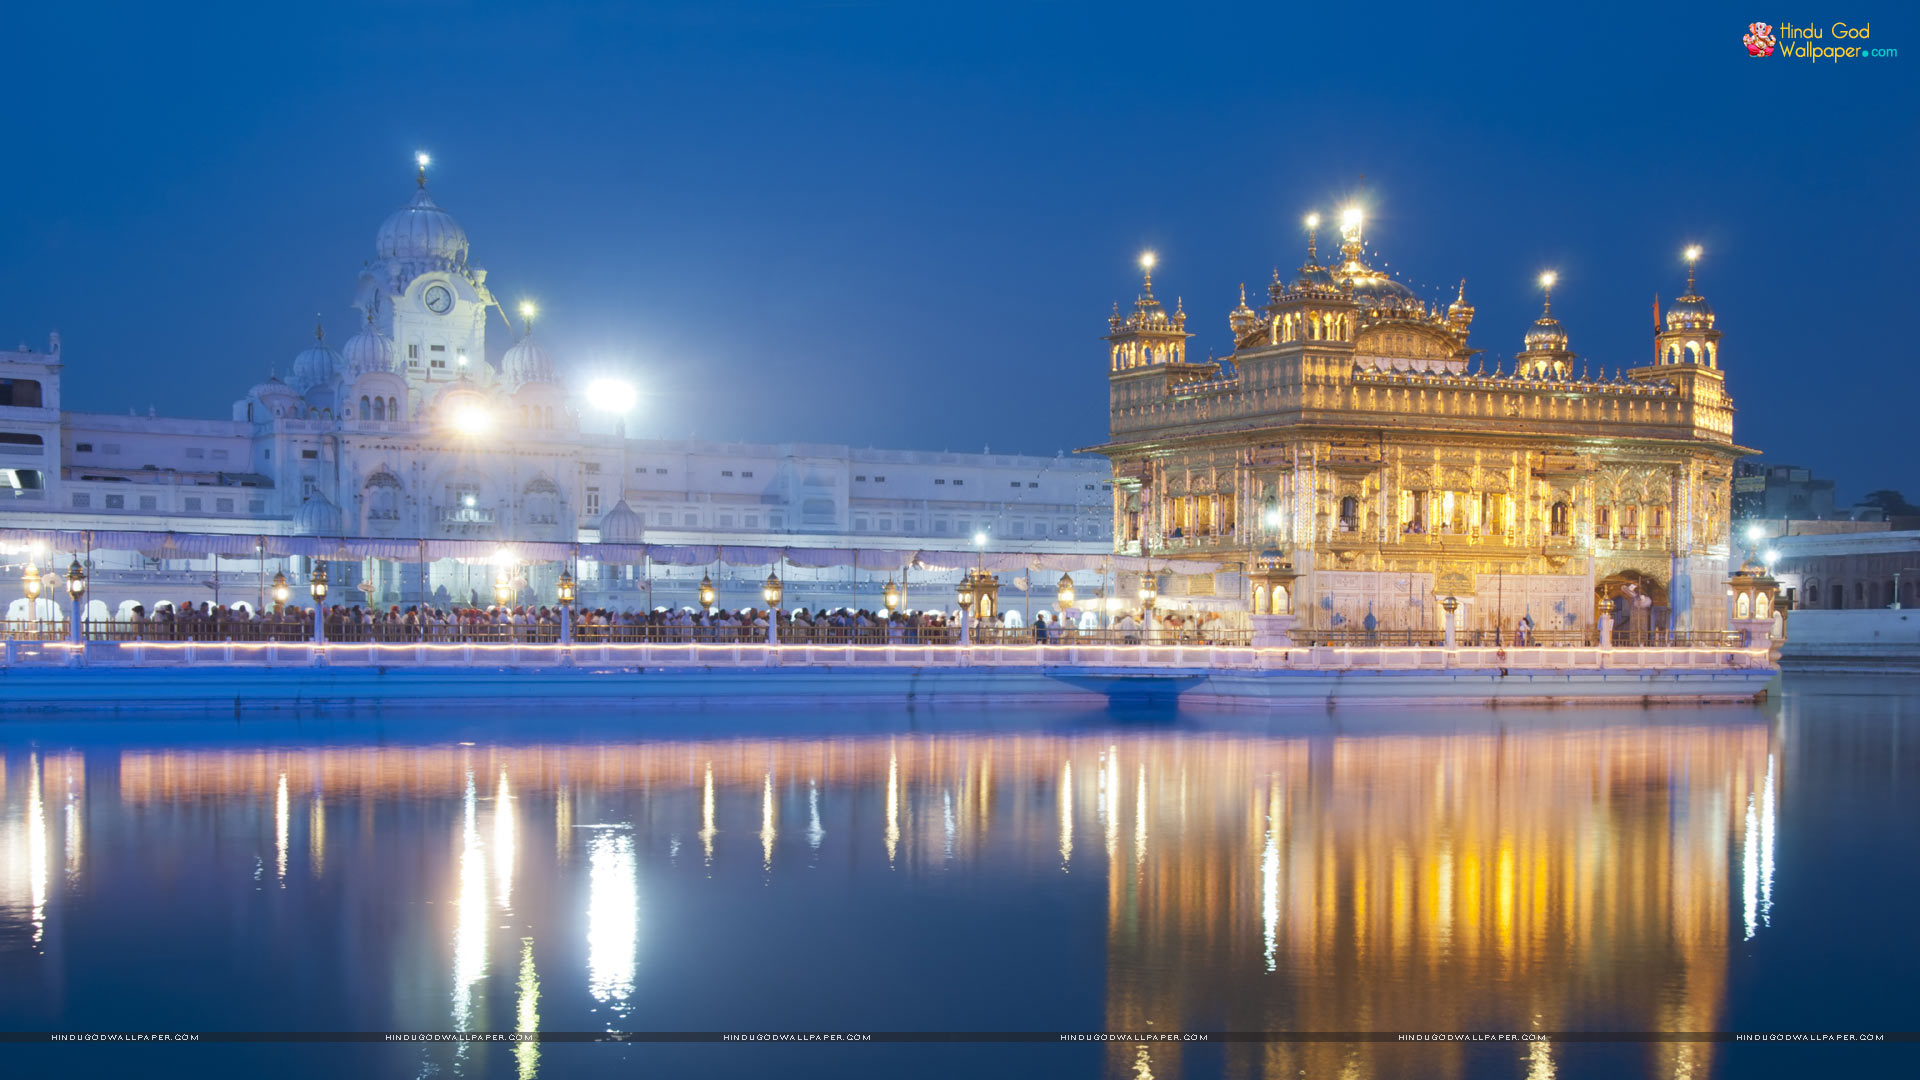 Golden temple hd wallpapers download - Golden temple images hd download ...